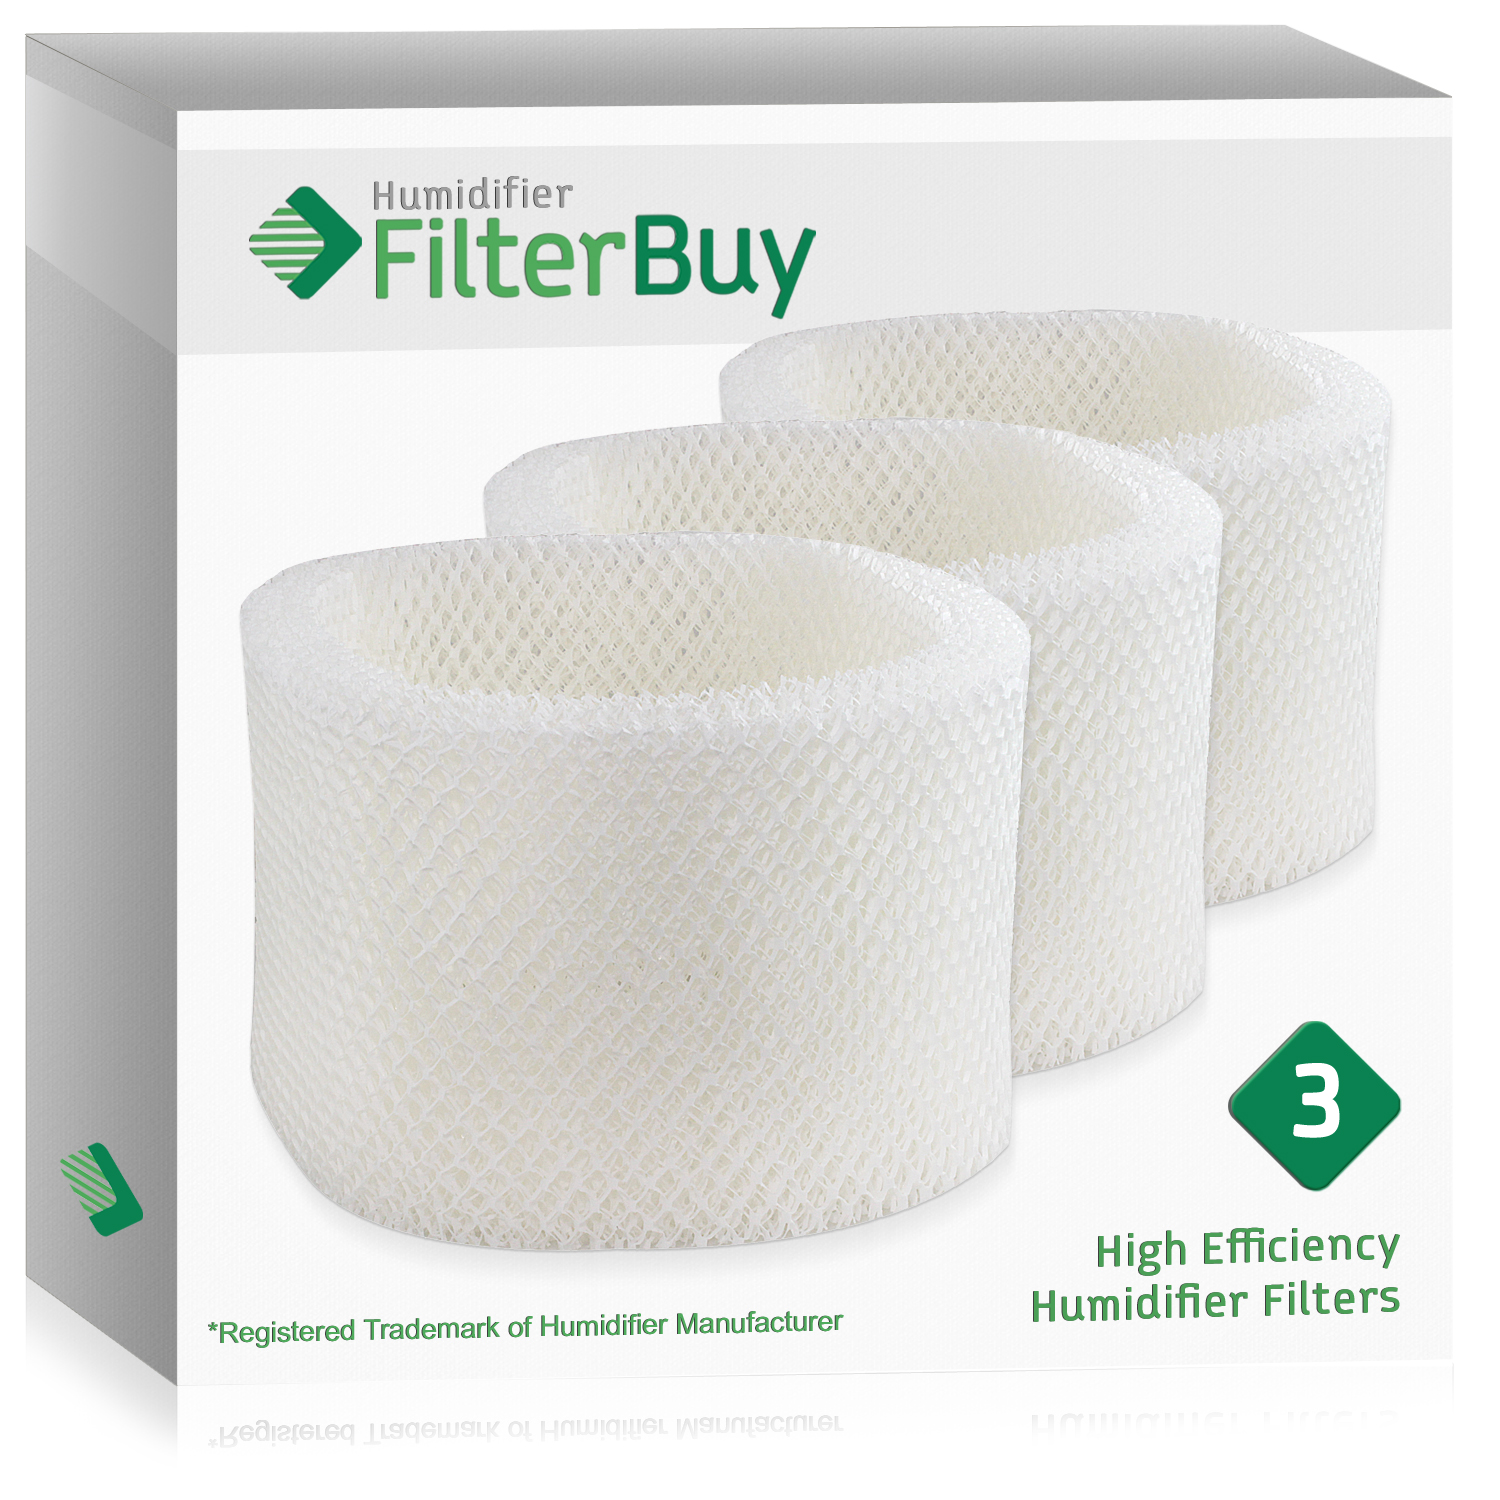 3 - HWF72 HWF75 Holmes, Touch Point, Sunbeam Humidifier Replacement Filters. Designed by FilterBuy in the USA.